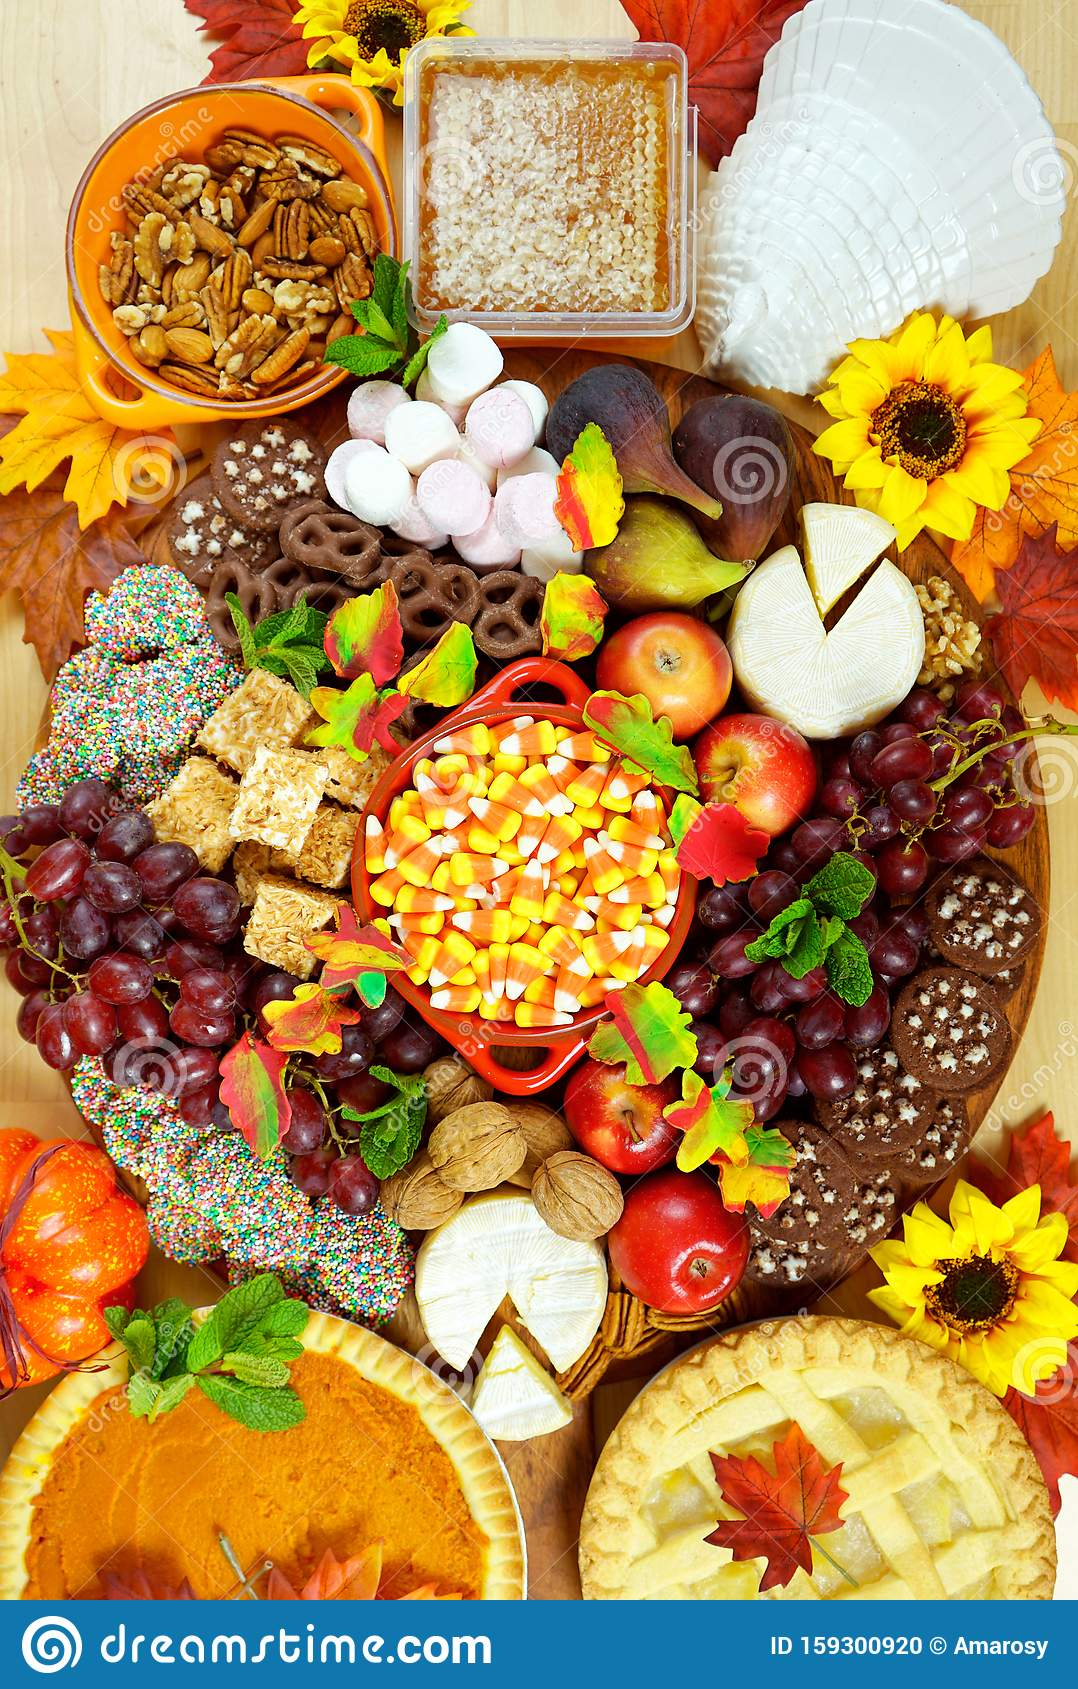 Thanksgiving Cheese And Dessert Grazing Platter Charcuterie Board Stock Photo Image Of Canada Leaves 159300920